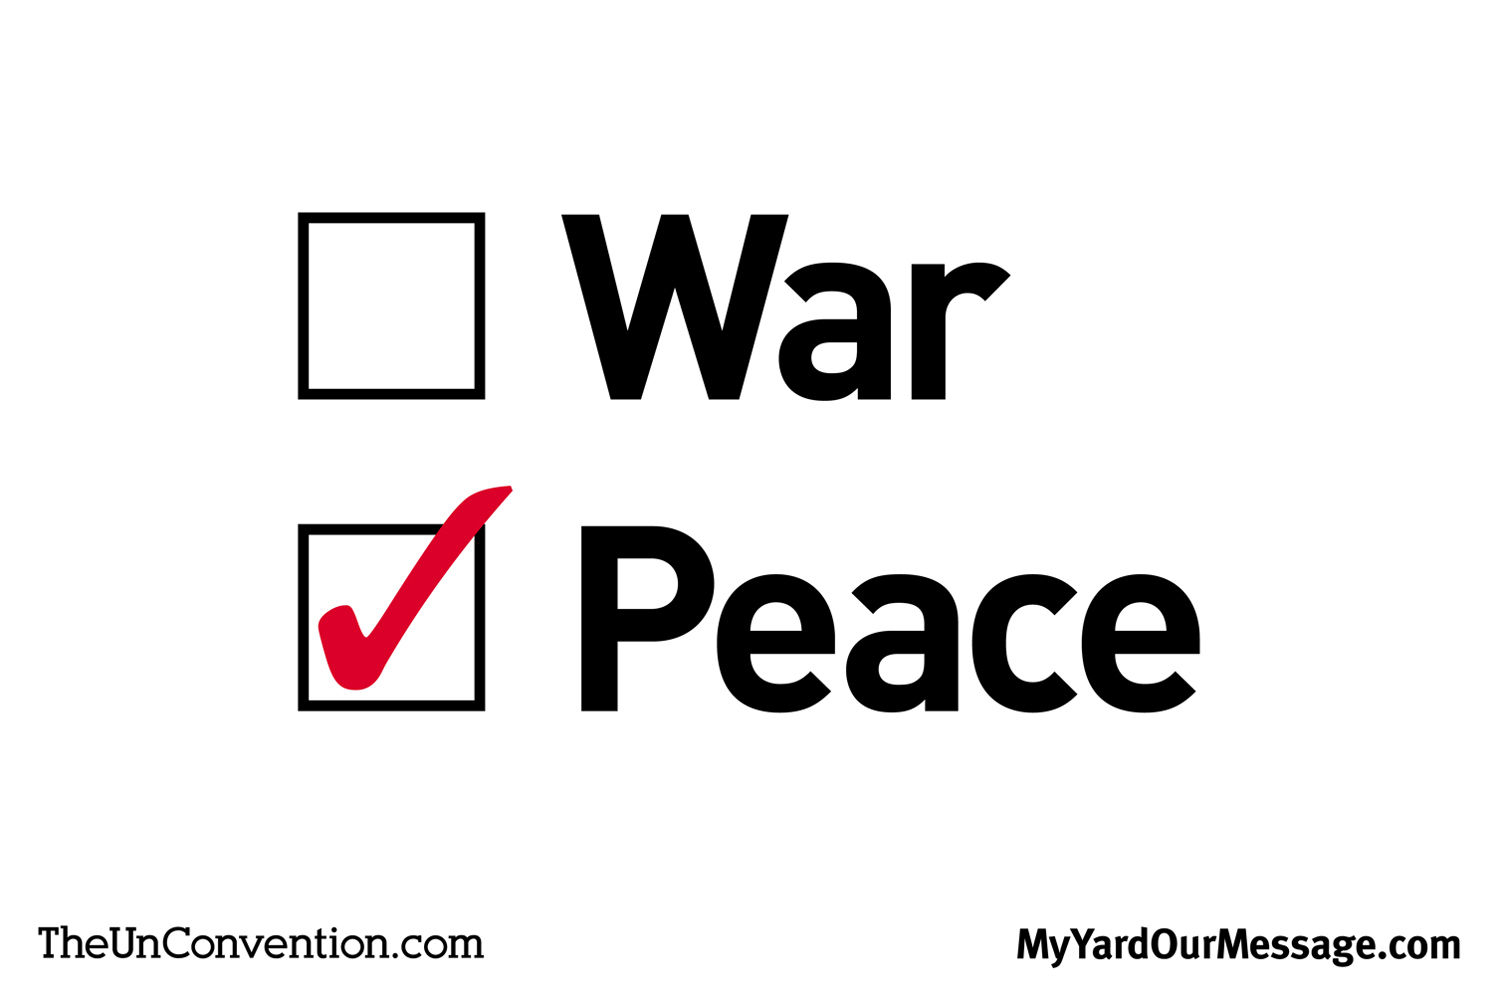 War vs. Peace